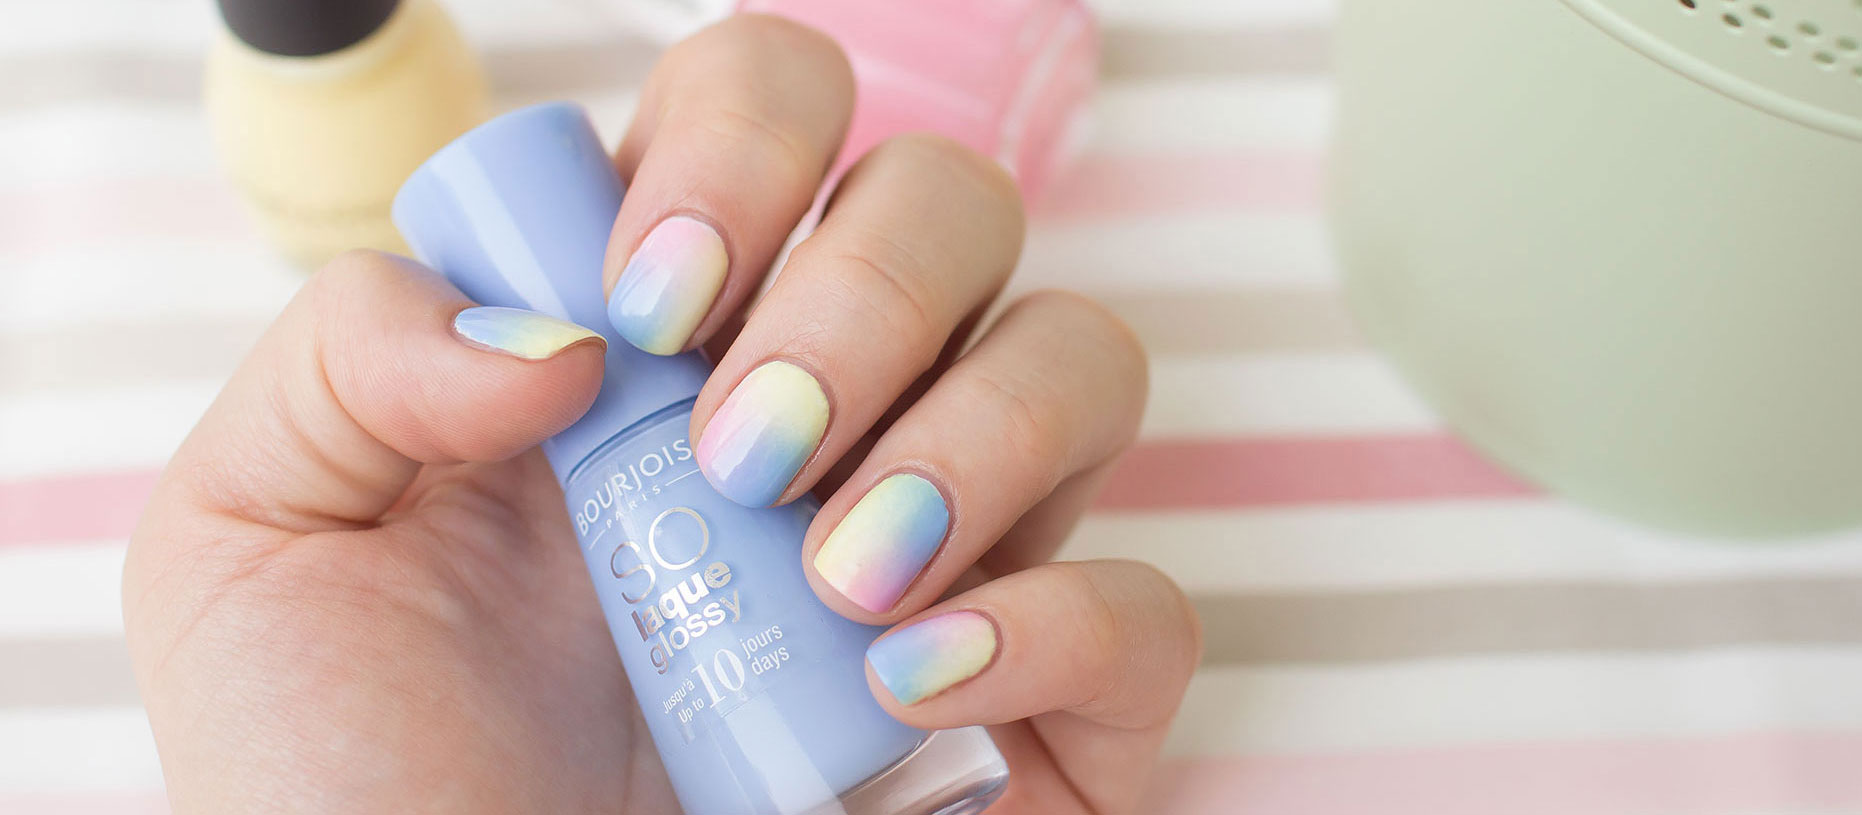 nails-of-the-week-10-spring-ombre-nails